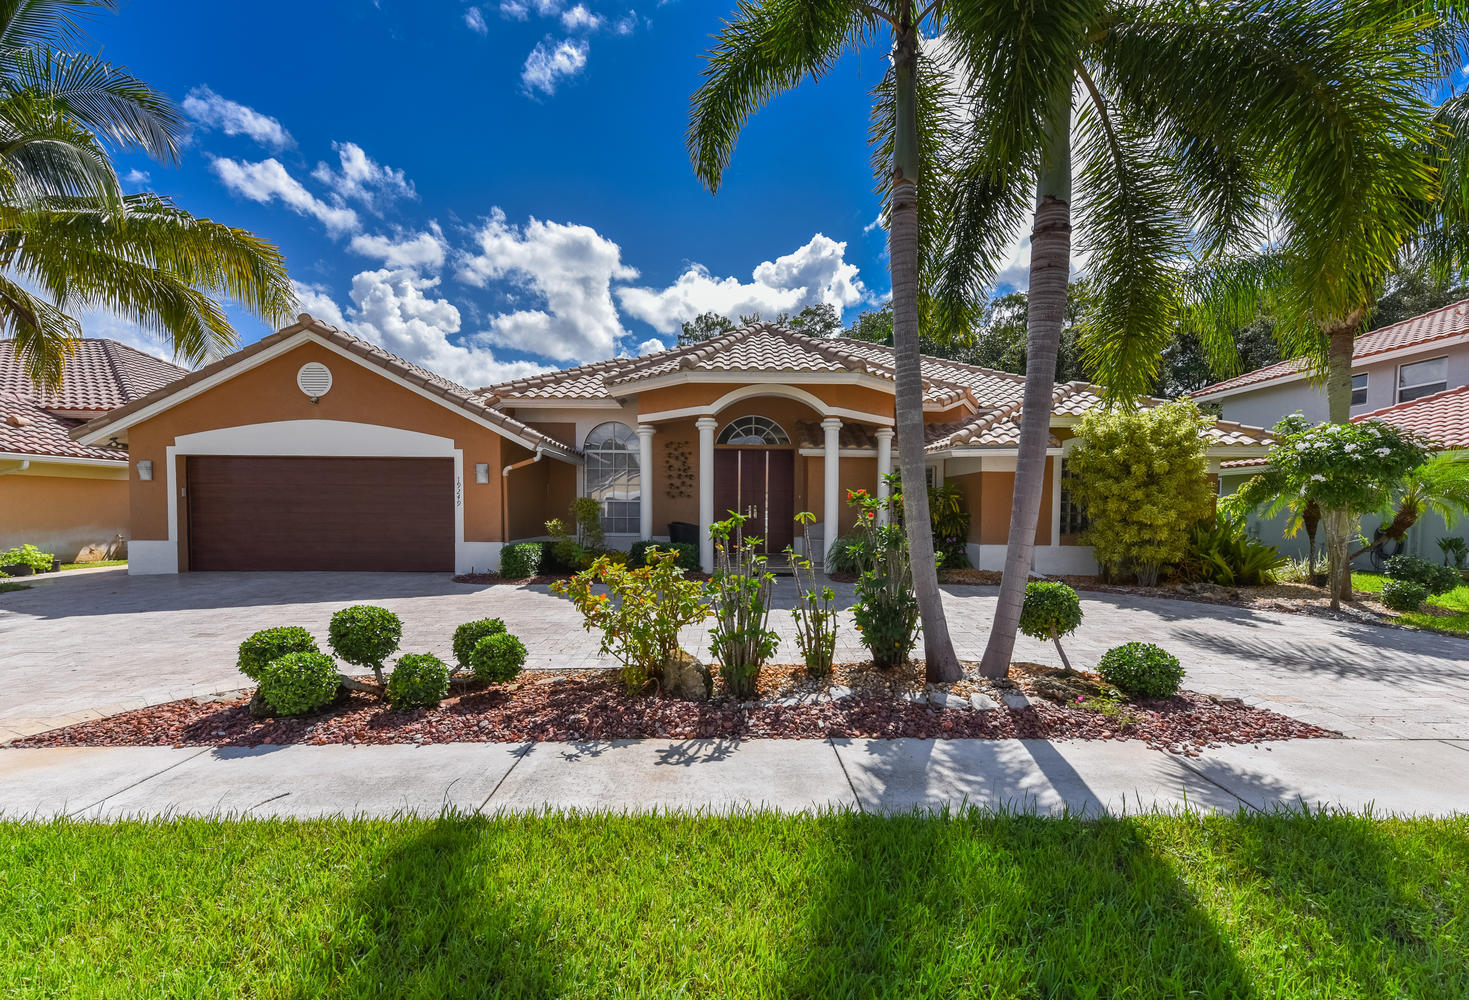 Home for sale in Boca Isles West Boca Raton Florida